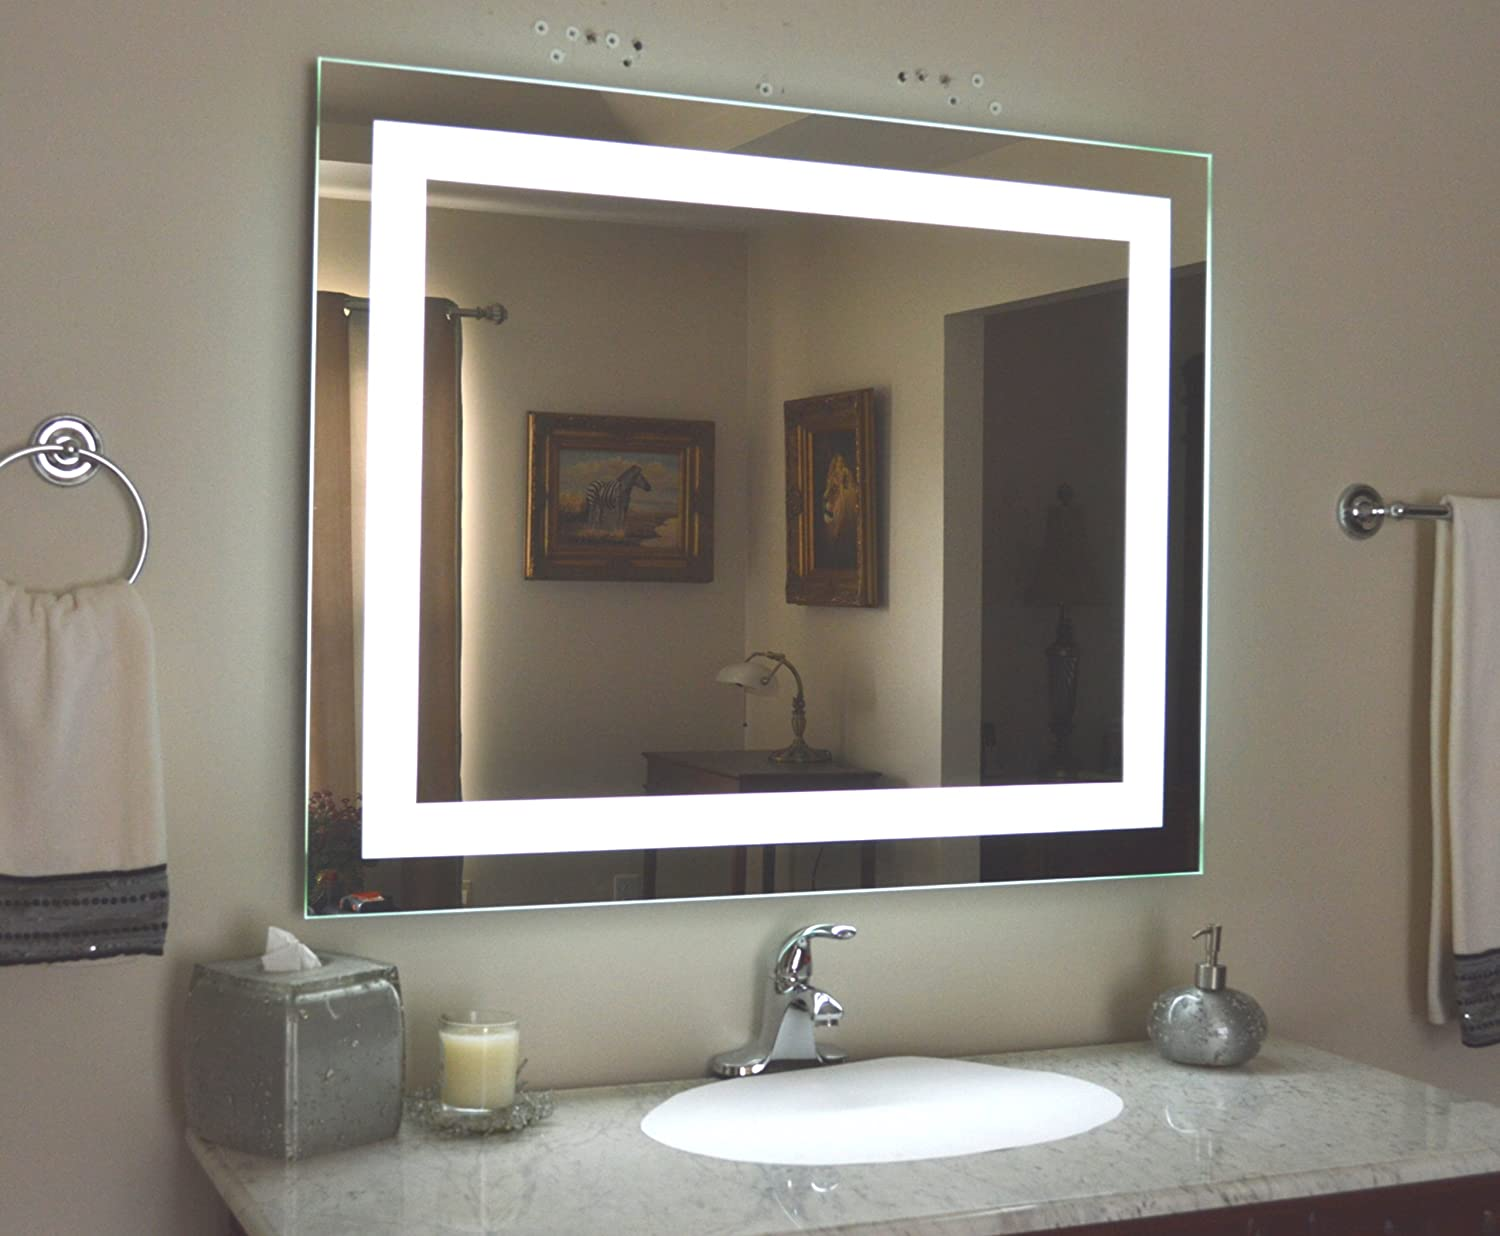 vanity mirror lighting. Amazon.com: Wall Mounted Lighted Vanity Mirror LED MAM84032 Commercial Grade 40: Home \u0026 Kitchen Lighting N